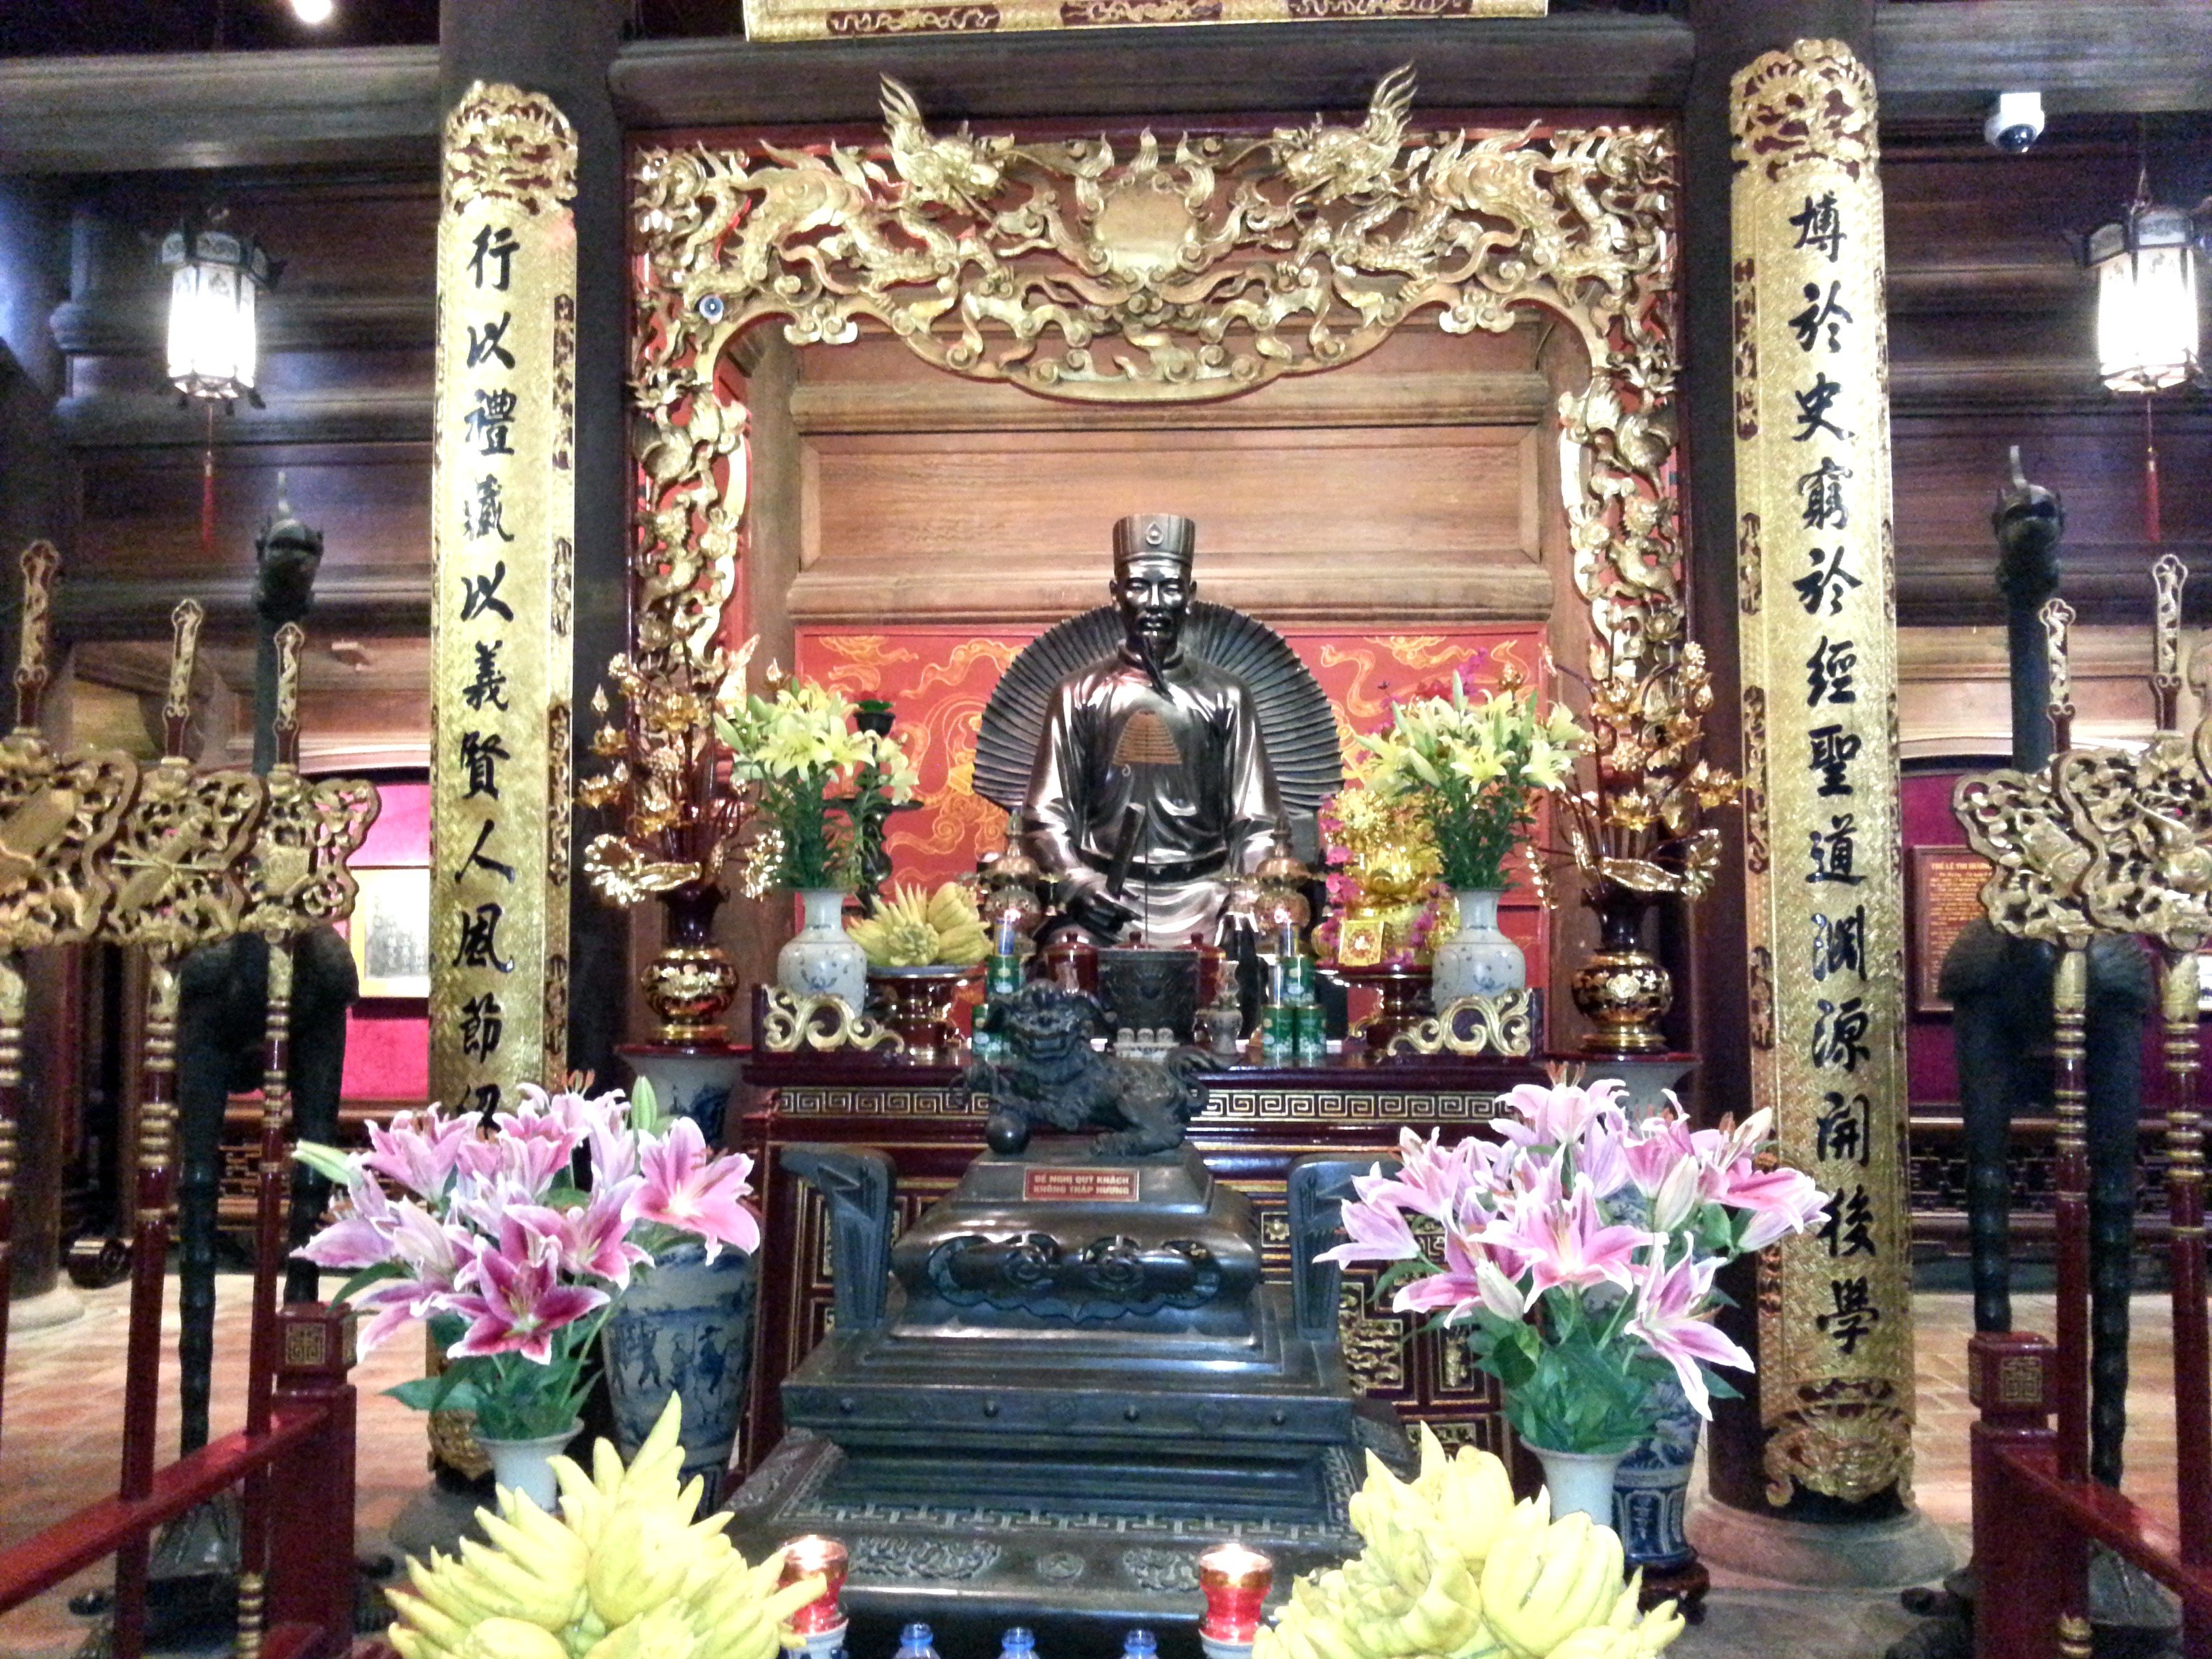 Statue of Chu Văn An in the Temple of Literature